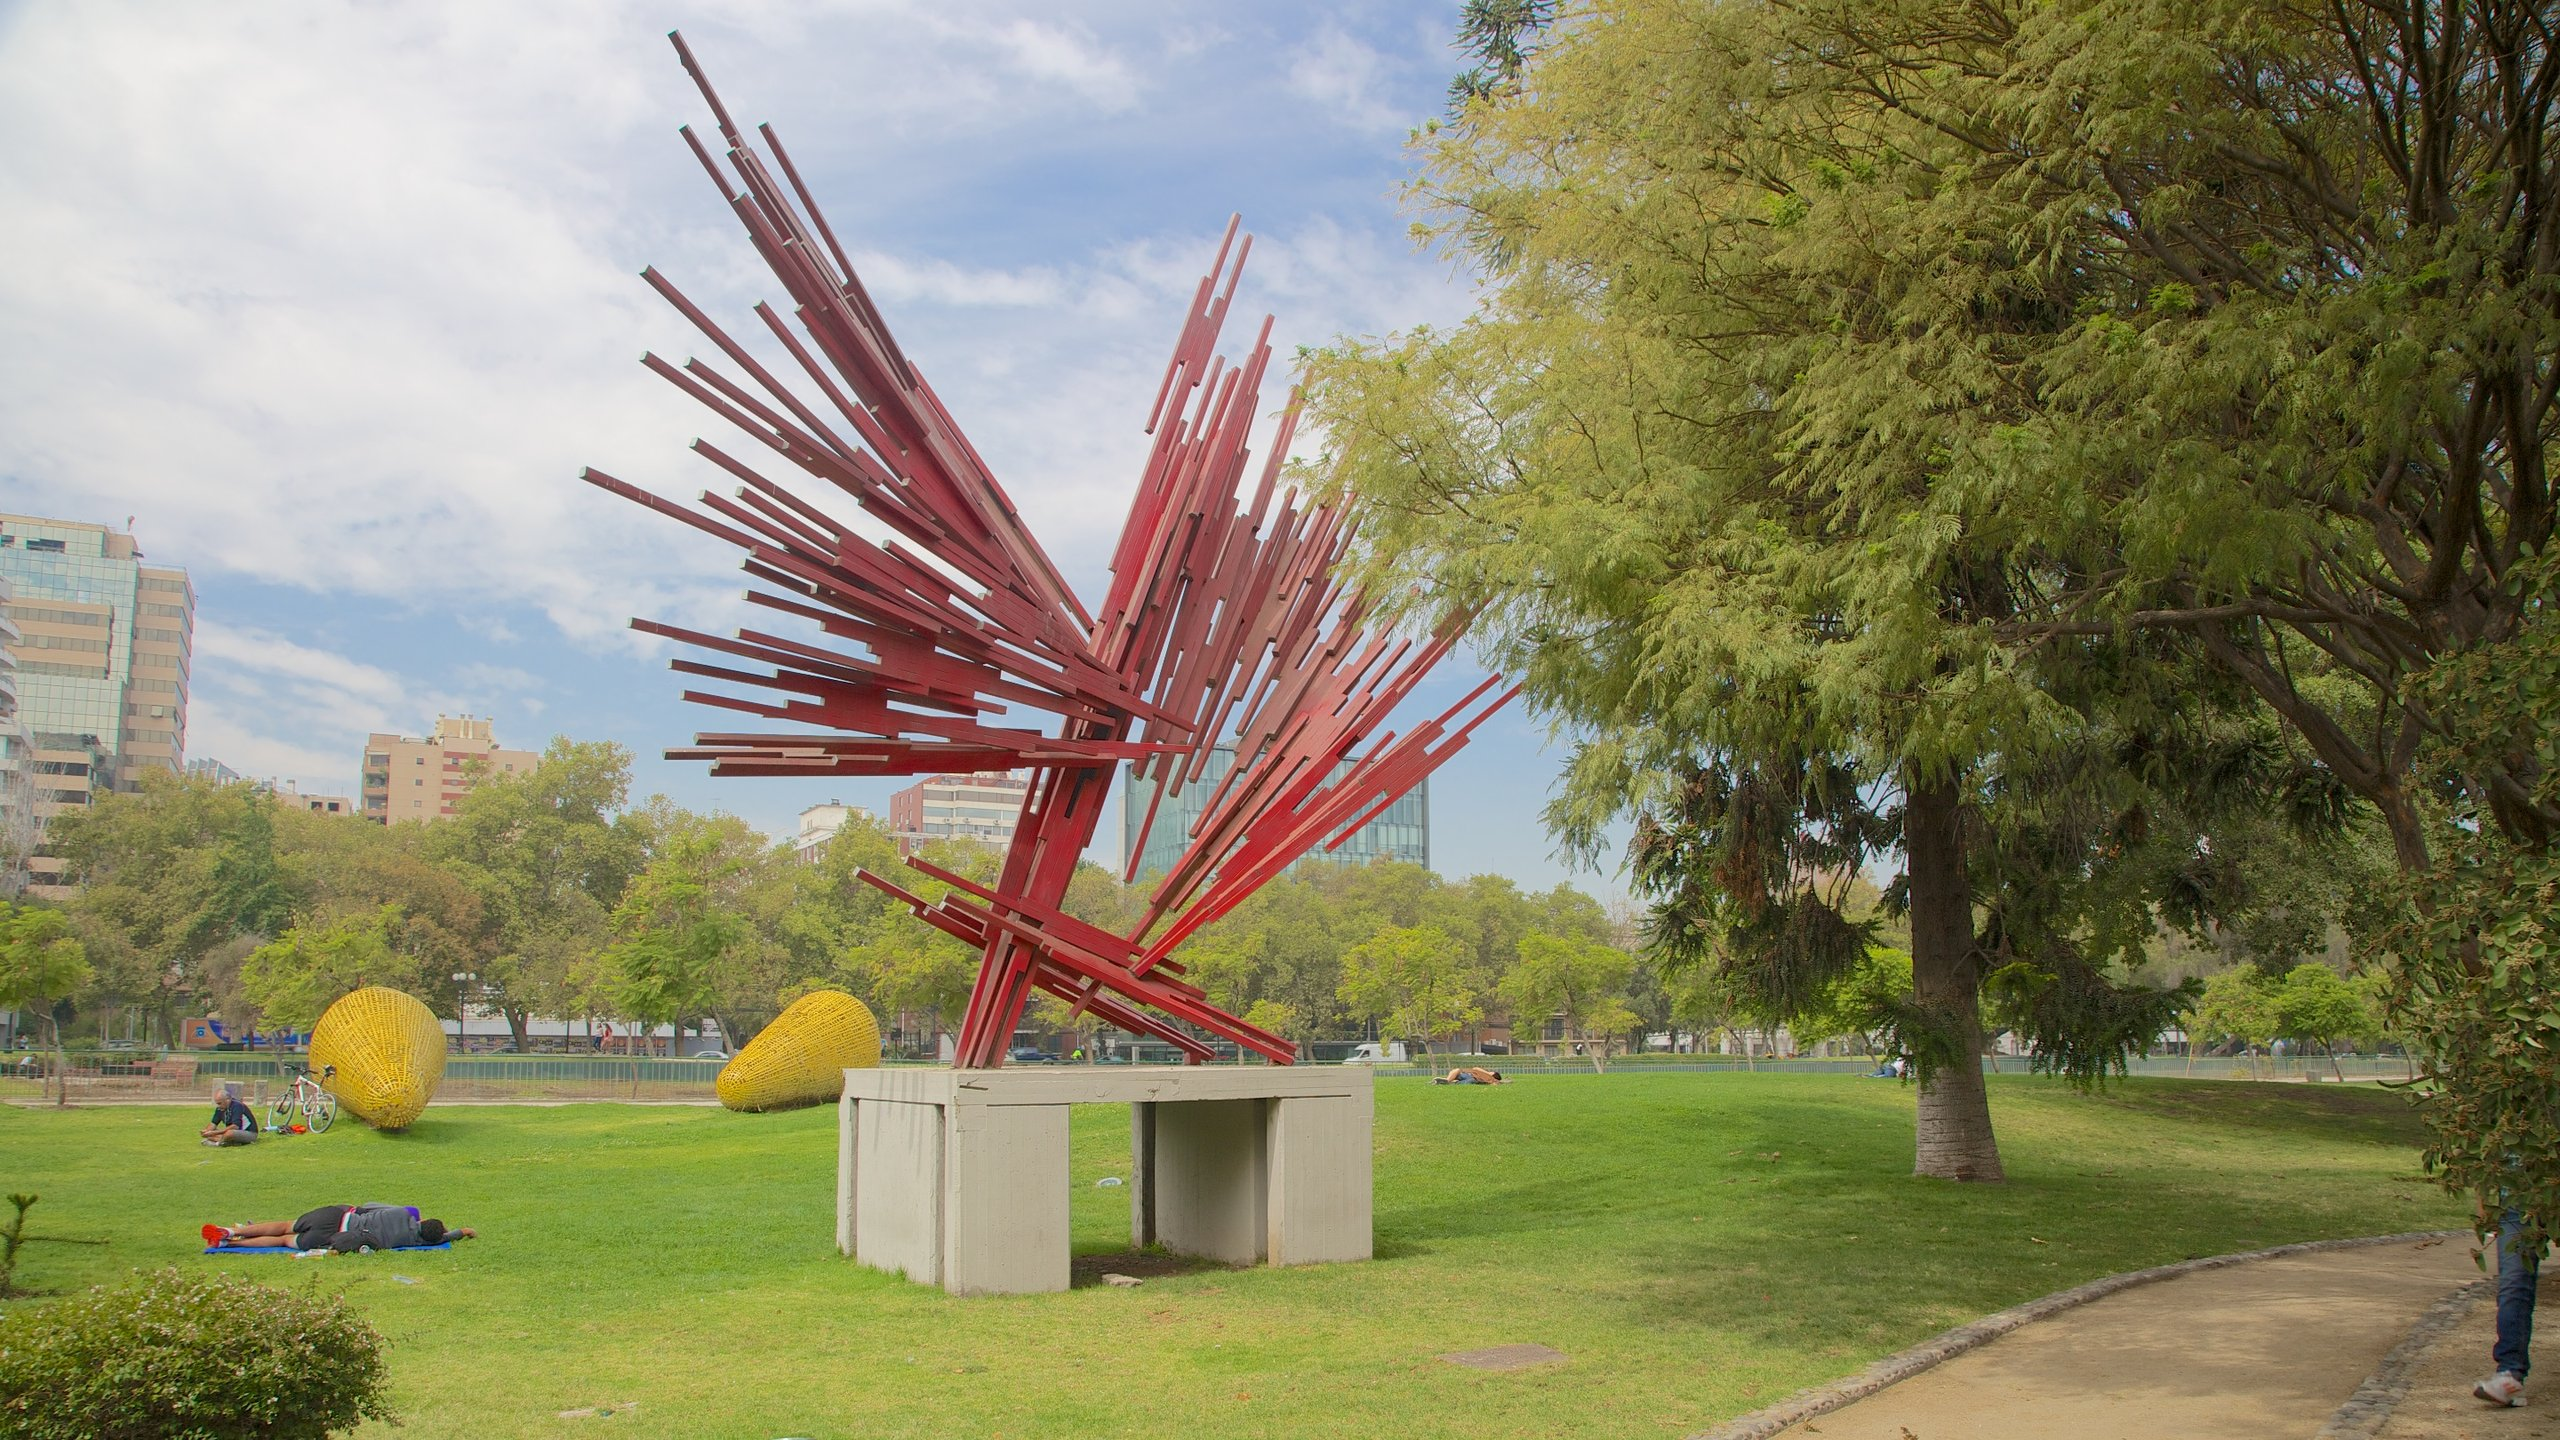 Admire a collection of sculptures by national and international artists, enjoy views of the Andes or watch live music events in this park in Providencia.